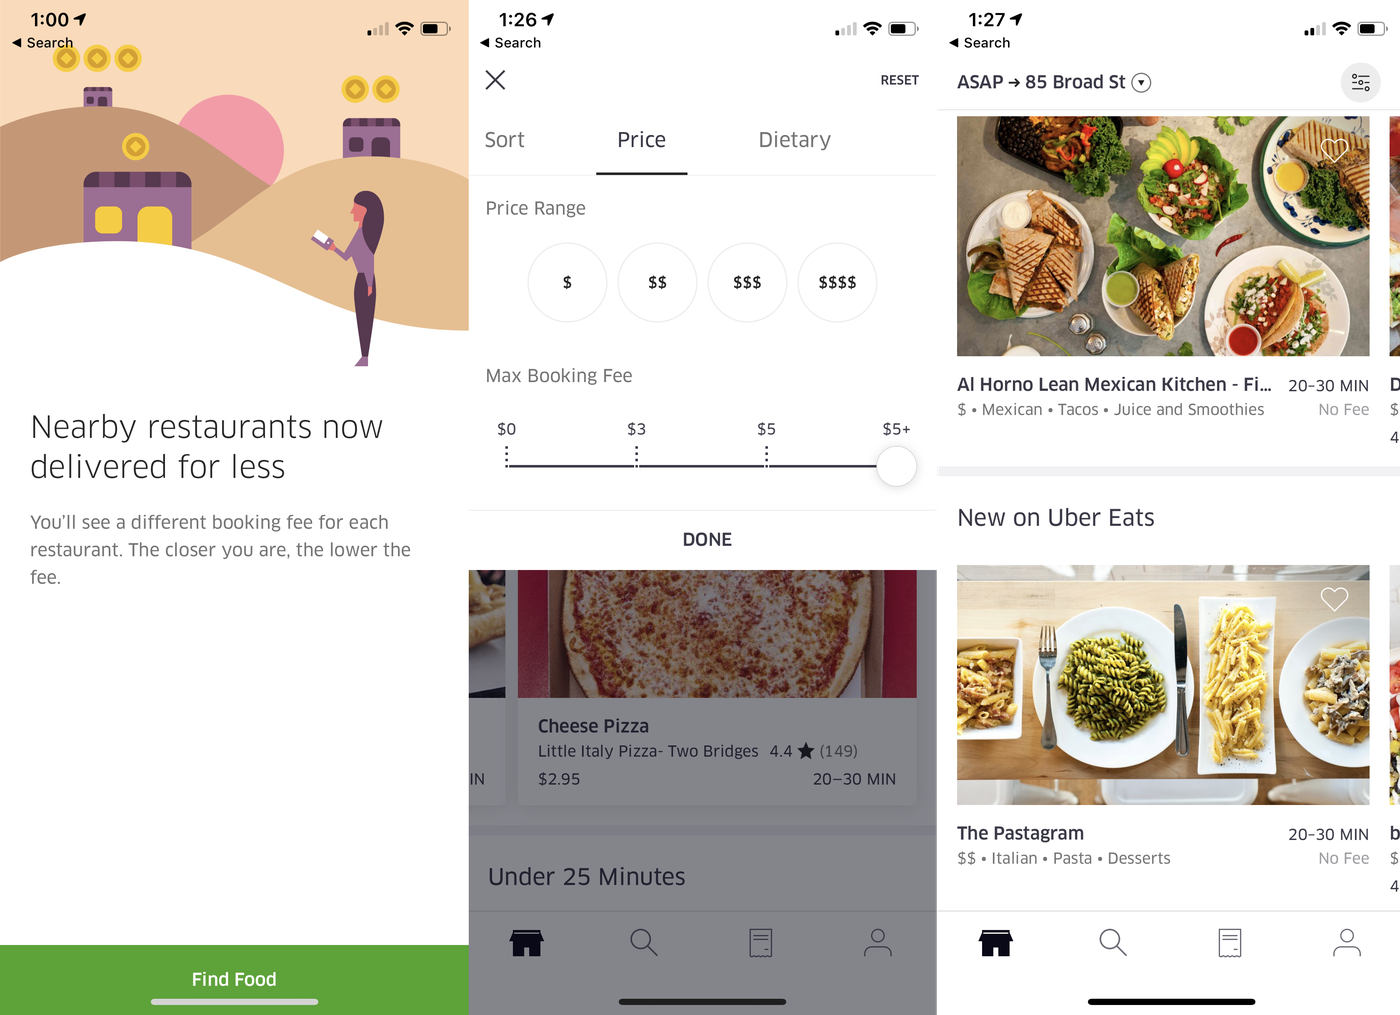 Uber Eats is changing its flat fees to delivery fees based